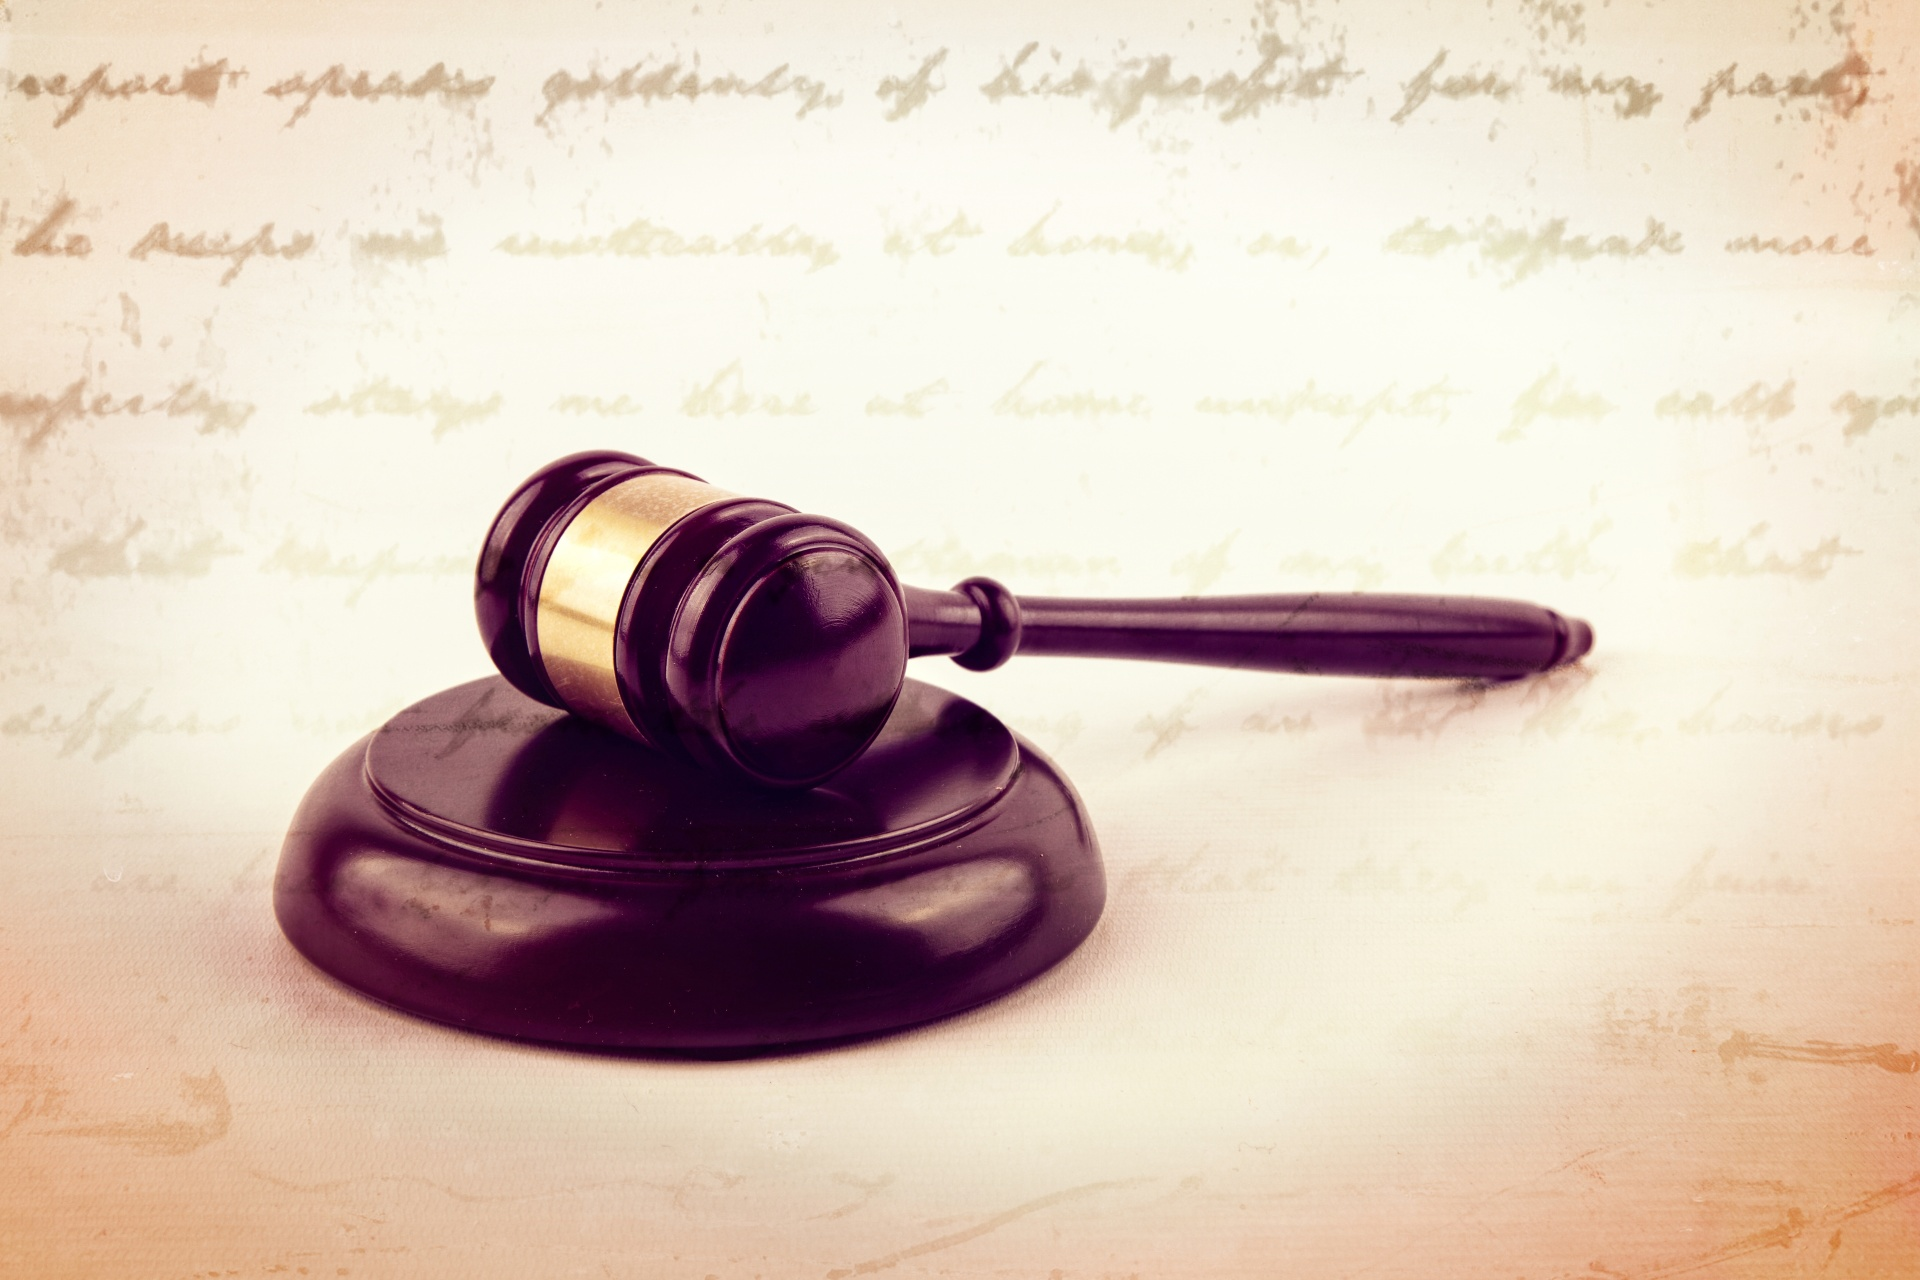 A gavel sits in front of a worn out document.